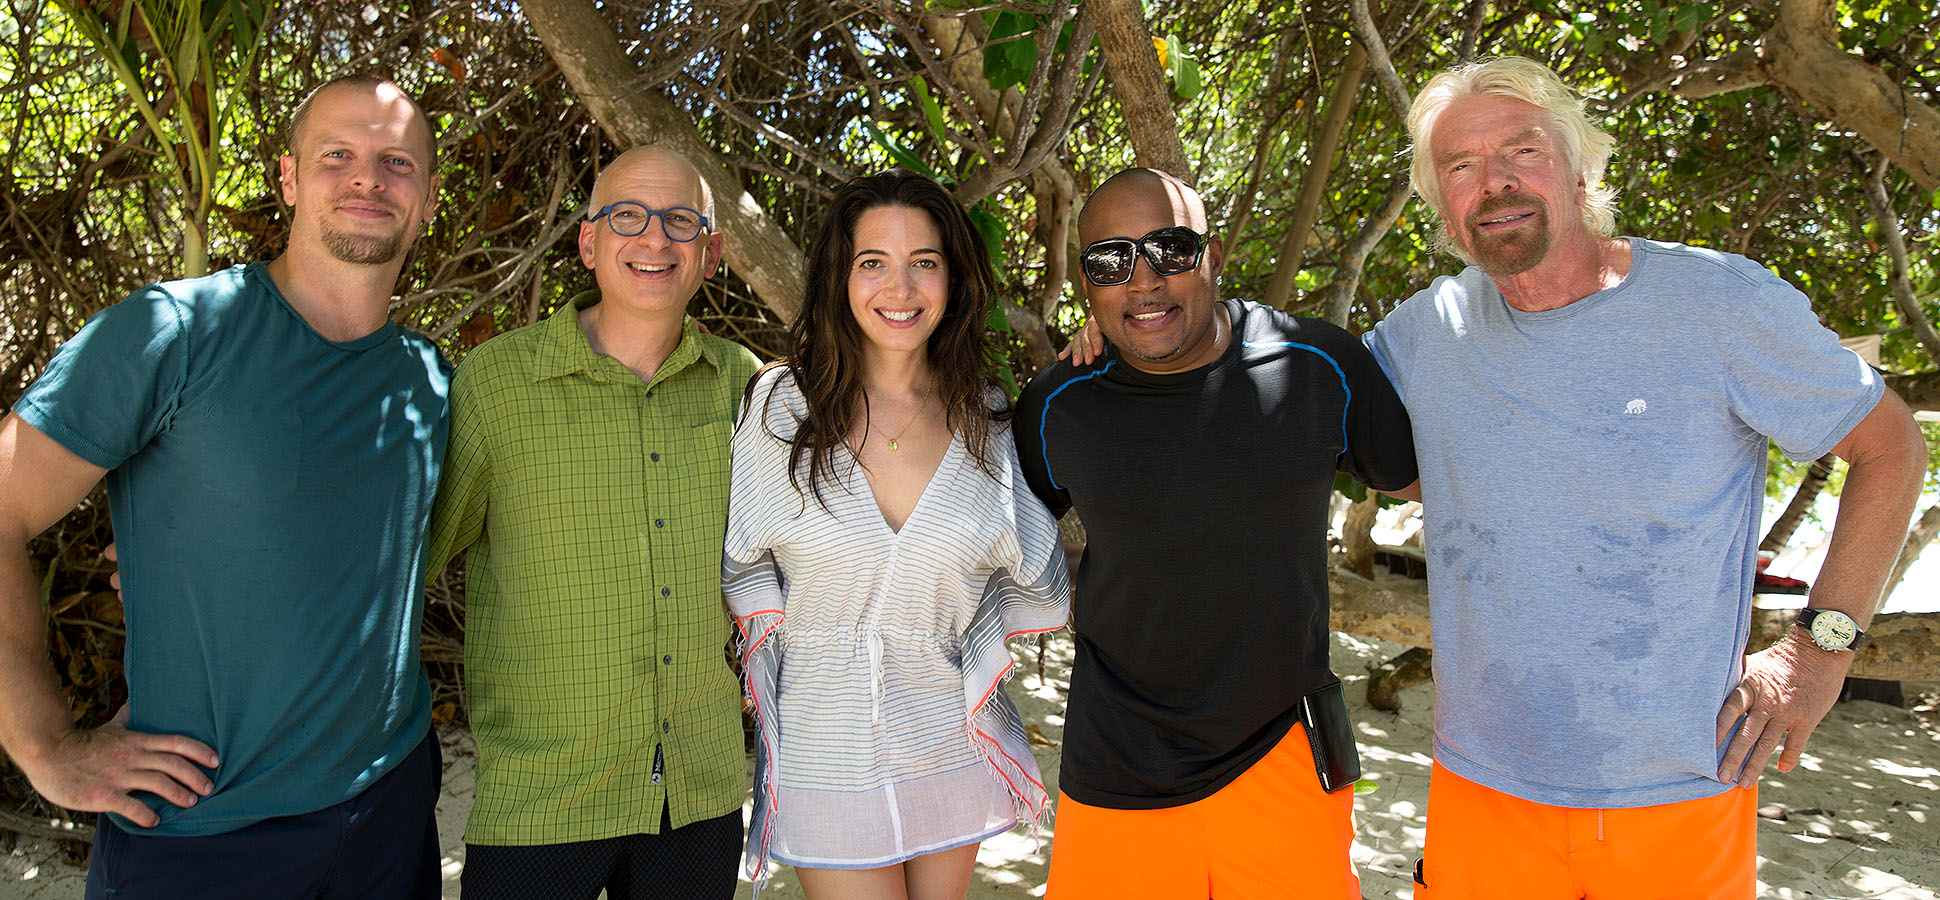 What You Learn From 5 Days With Richard Branson, Daymond John, and Tim Ferriss